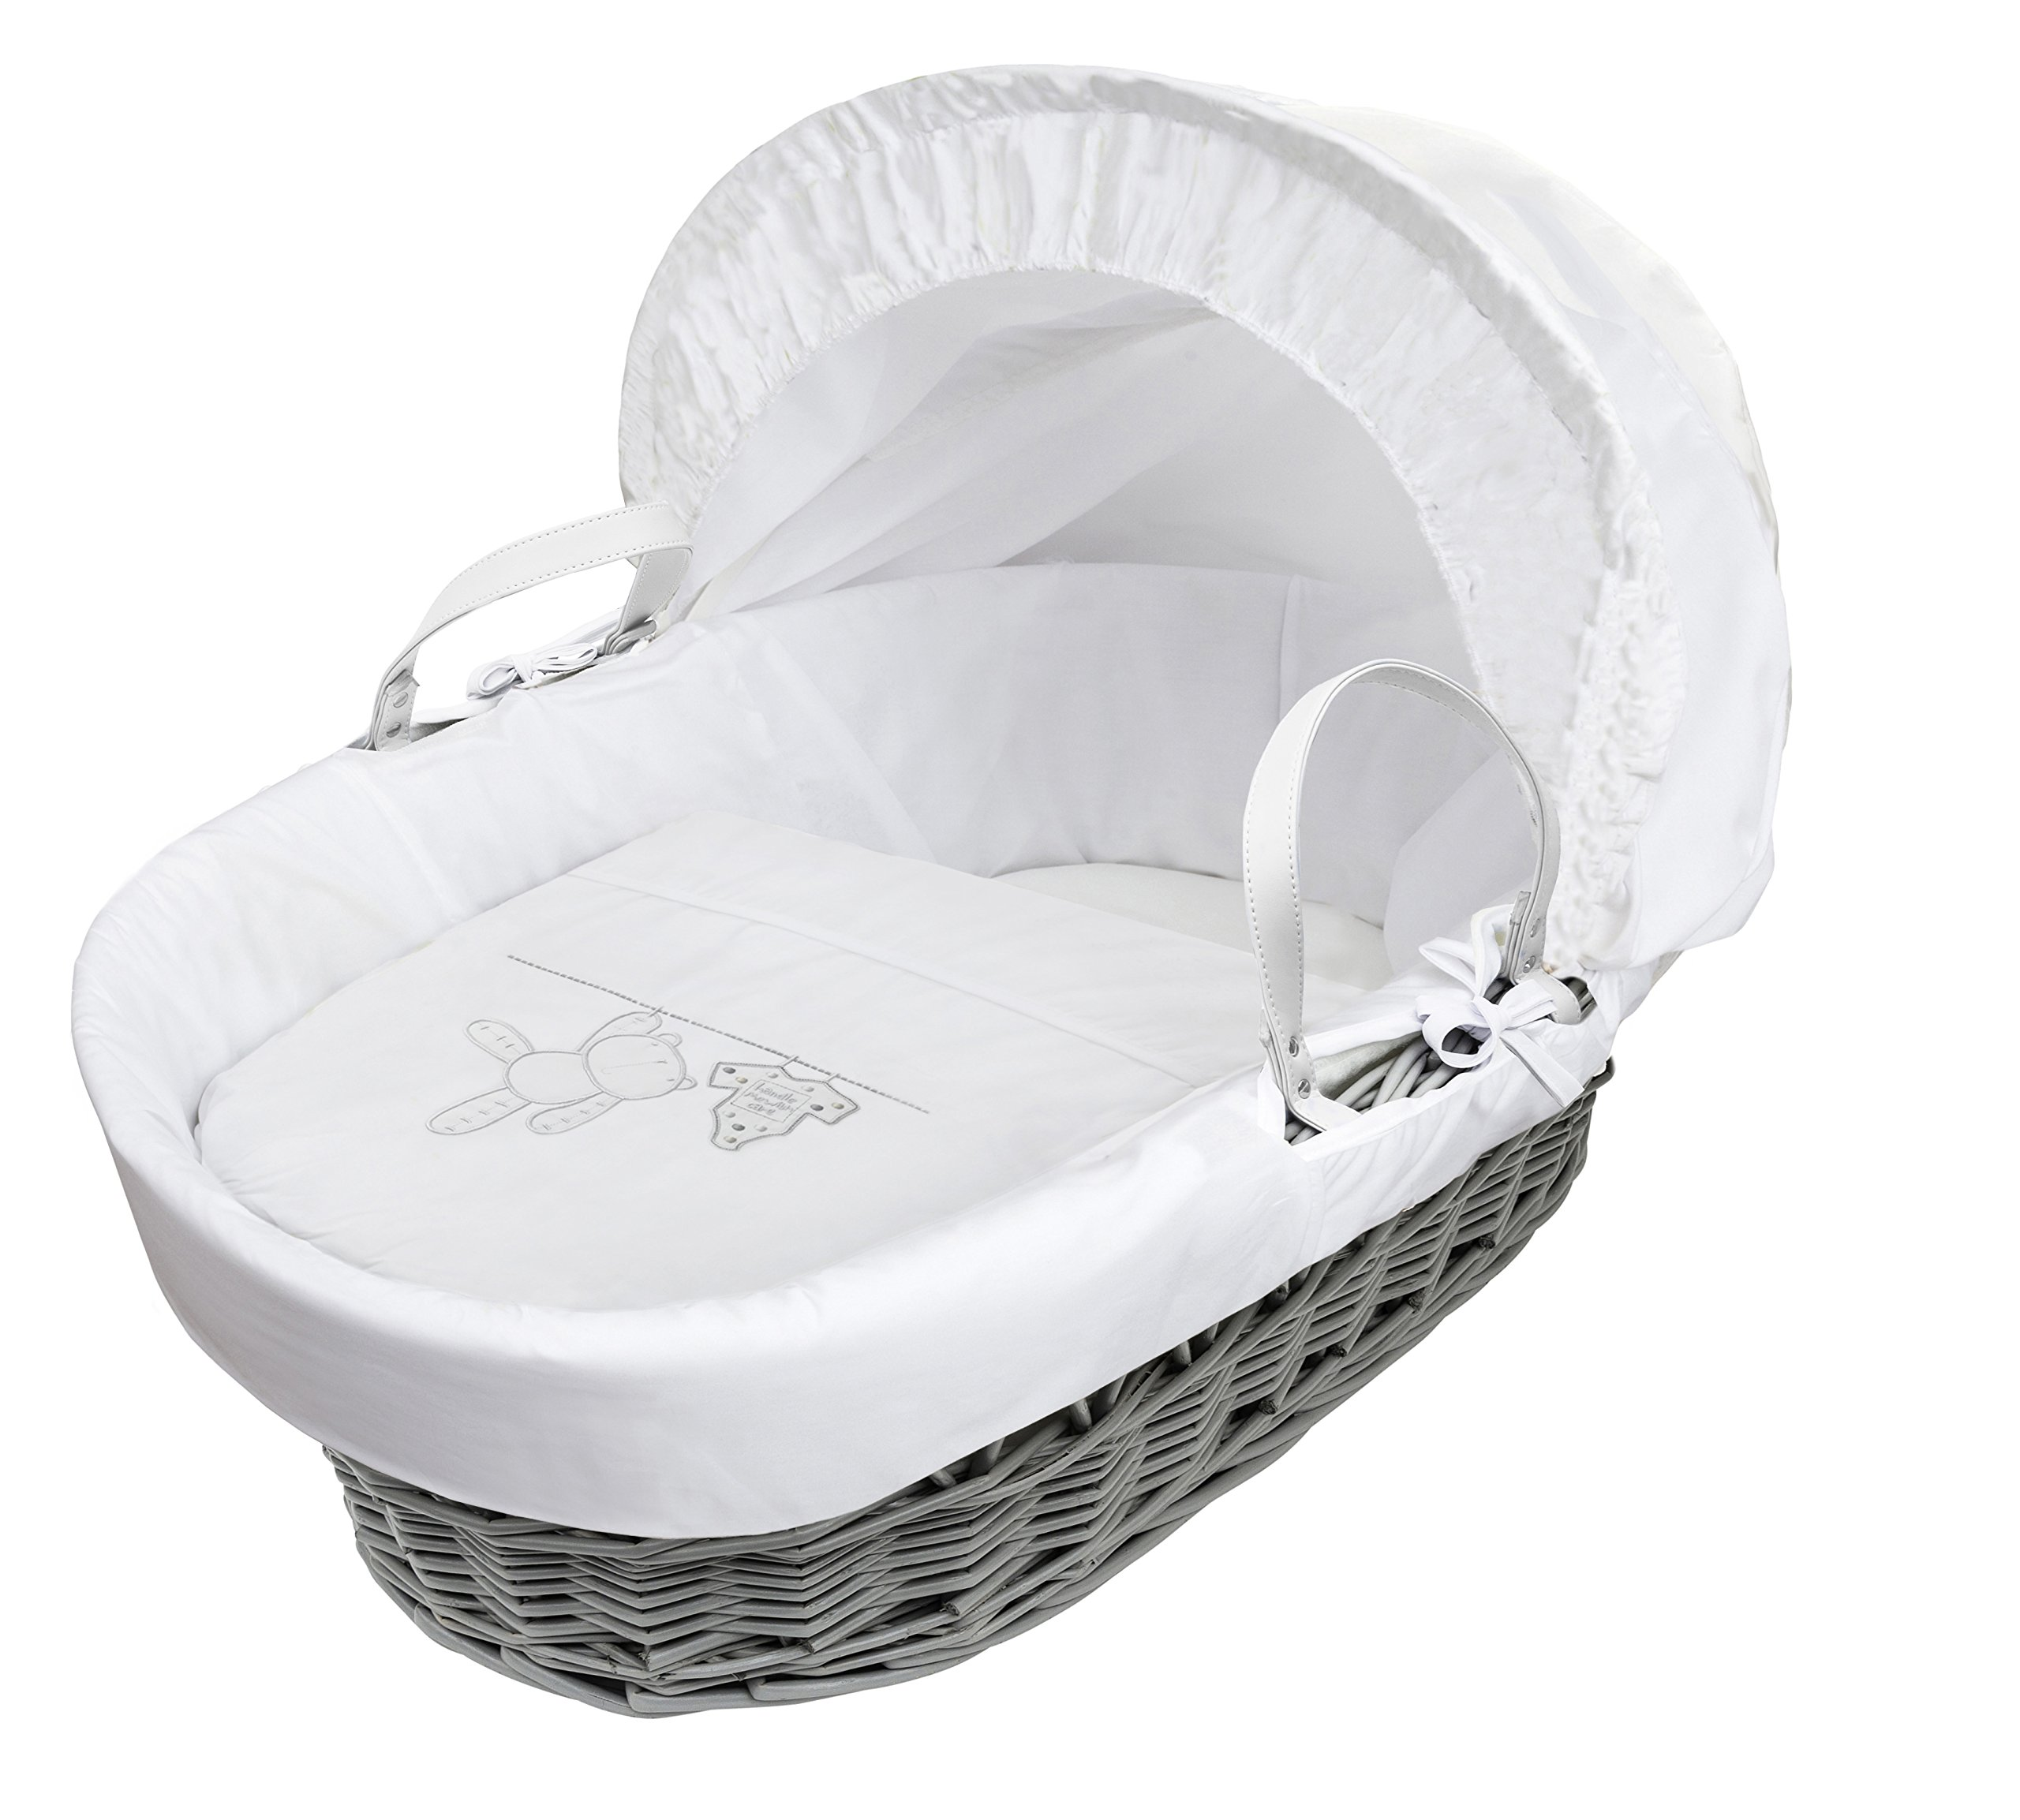 White Teddy Wash Day On Grey Wicker Moses Basket & Deluxe Dove Grey Rocking Stand Elegant Baby Suitable from newborn for up to 9kg, this Moses Basket uses Easy-care Poly Cotton with a soft padding surround Suitable from newborn to 9 months It also includes a comfortable mattress and an adjustable hood perfect to create a cosy sleeping space for your precious little one 2